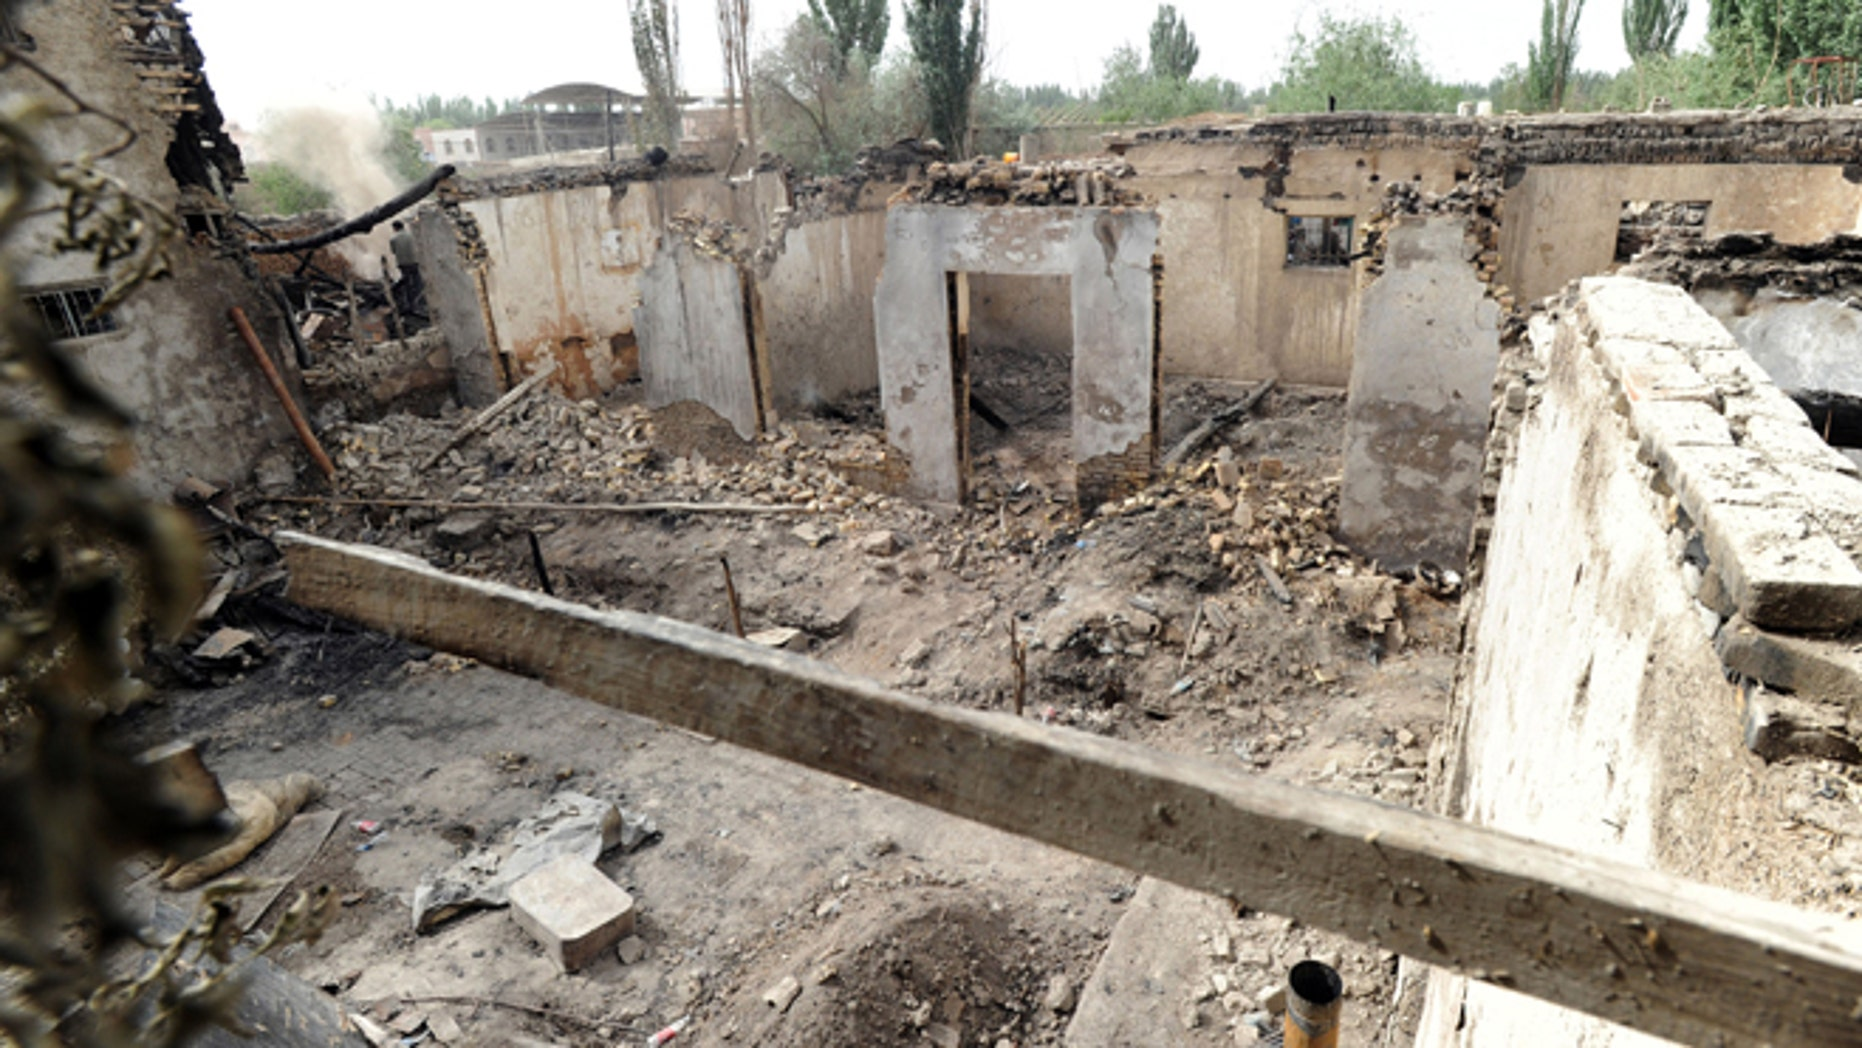 April 25, 2013: In this photo, houses destroyed in a violent clash are left in Kashgar, in Chinas northwestern region of Xinjiang. The violent clash on Tuesday, April 23 between authorities and assailants described as a terrorist gang left 21 people dead in Xinjiang, the local government said Wednesday. China chided the U.S. on Thursday, April 25 for questioning the deadly clash on the Chinese Central Asian frontier that Beijing said was terrorism but that Washington said should be investigated.